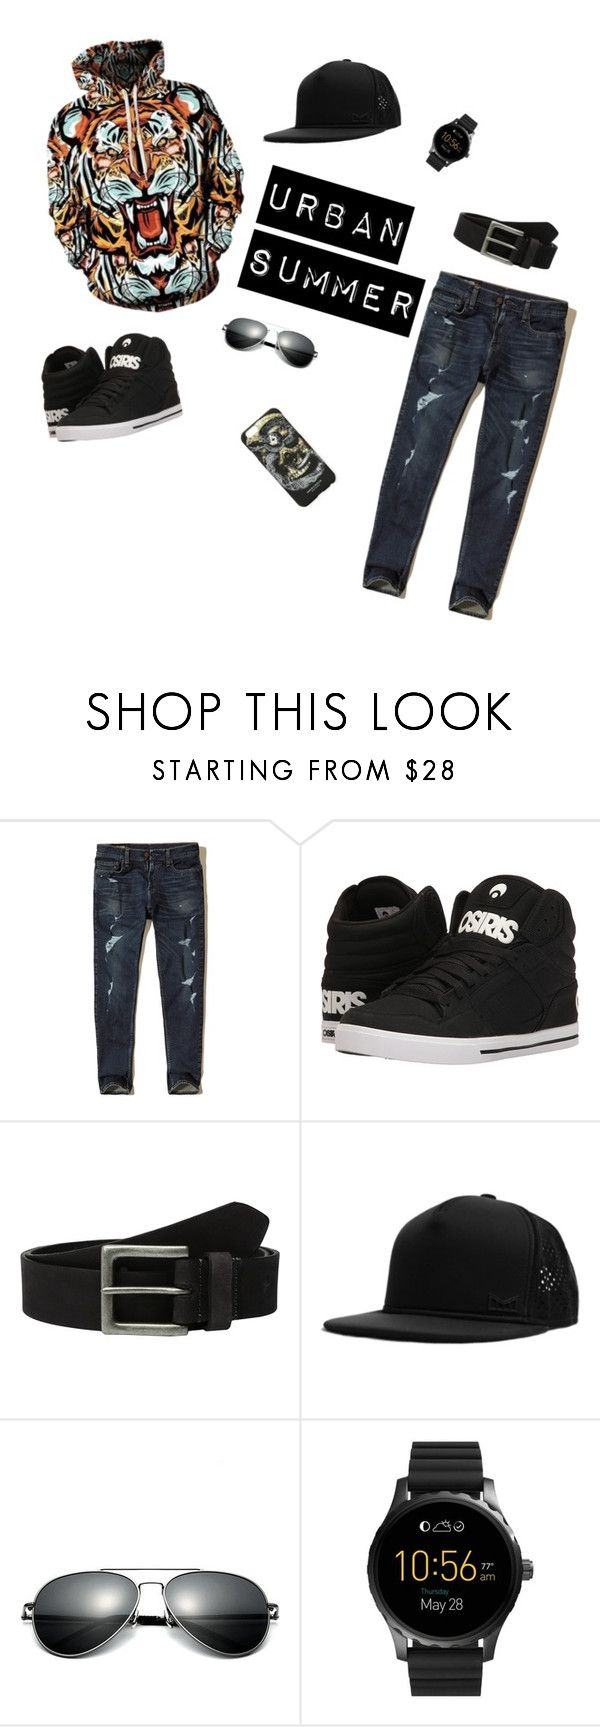 """Urban Summer"" by breezeshirt on Polyvore featuring Hollister Co., Osiris, Timberland, MELIN, FOSSIL, Marcelo Burlon, men's fashion, menswear, GetTheLook and StreetStyle"